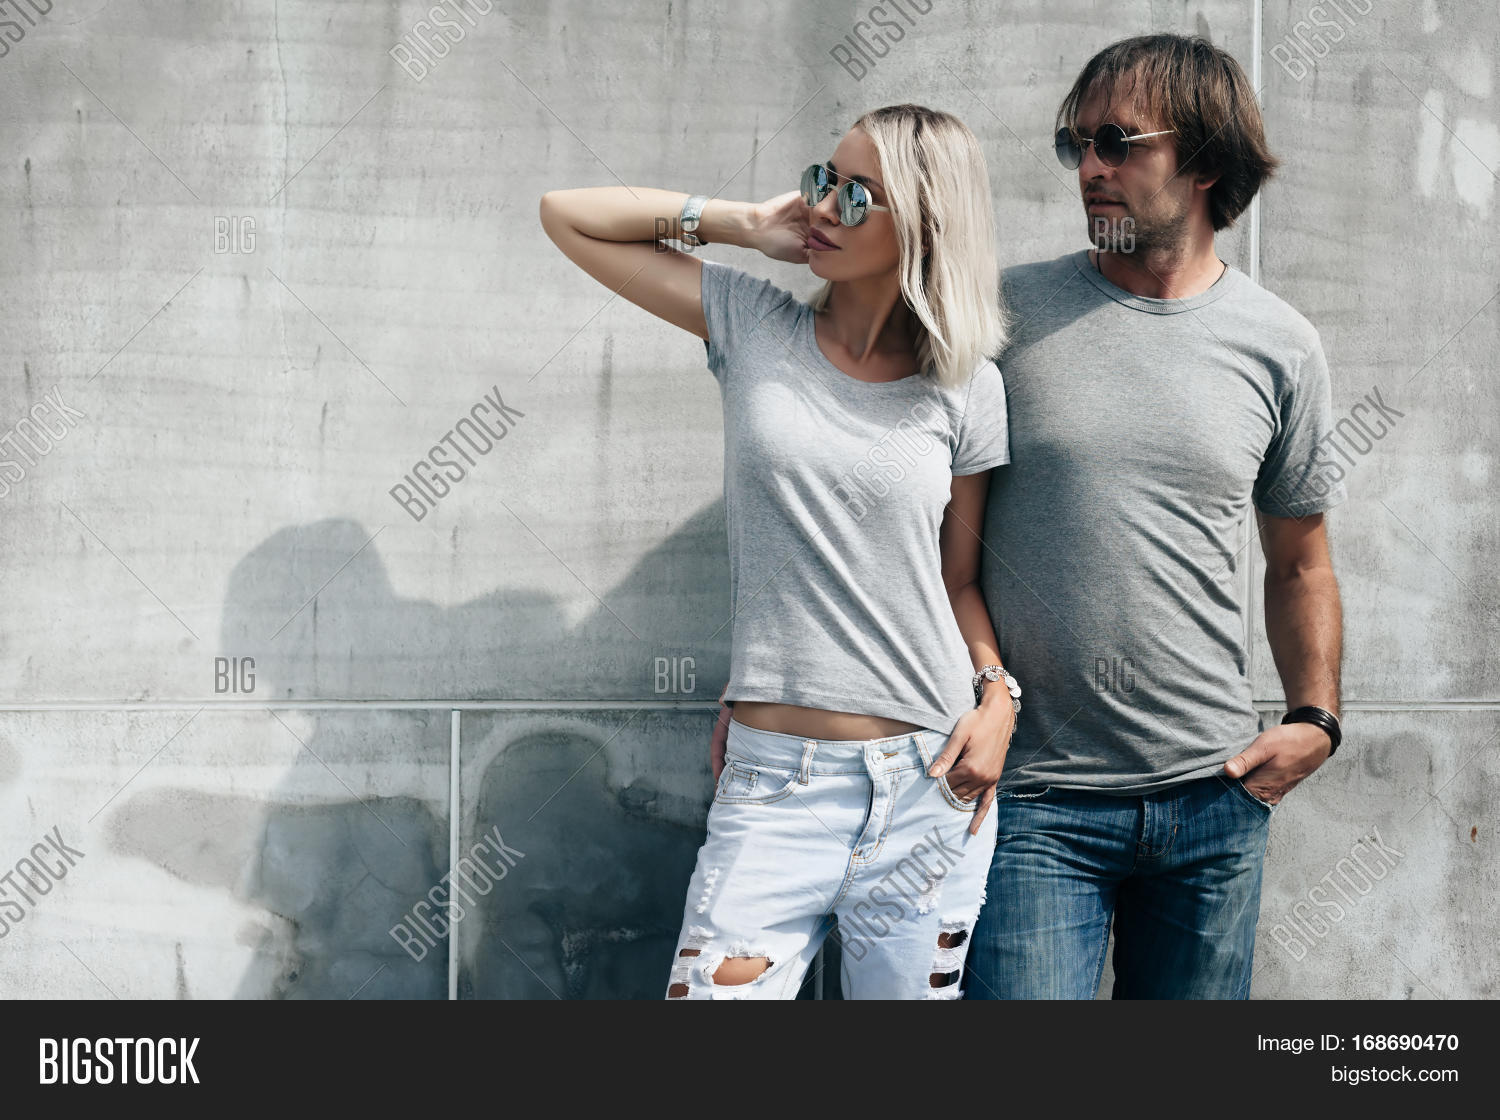 two hipster models man woman image amp photo bigstock